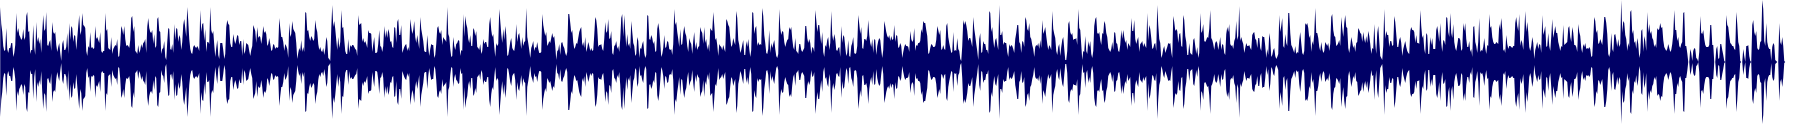 waveform of track #68742